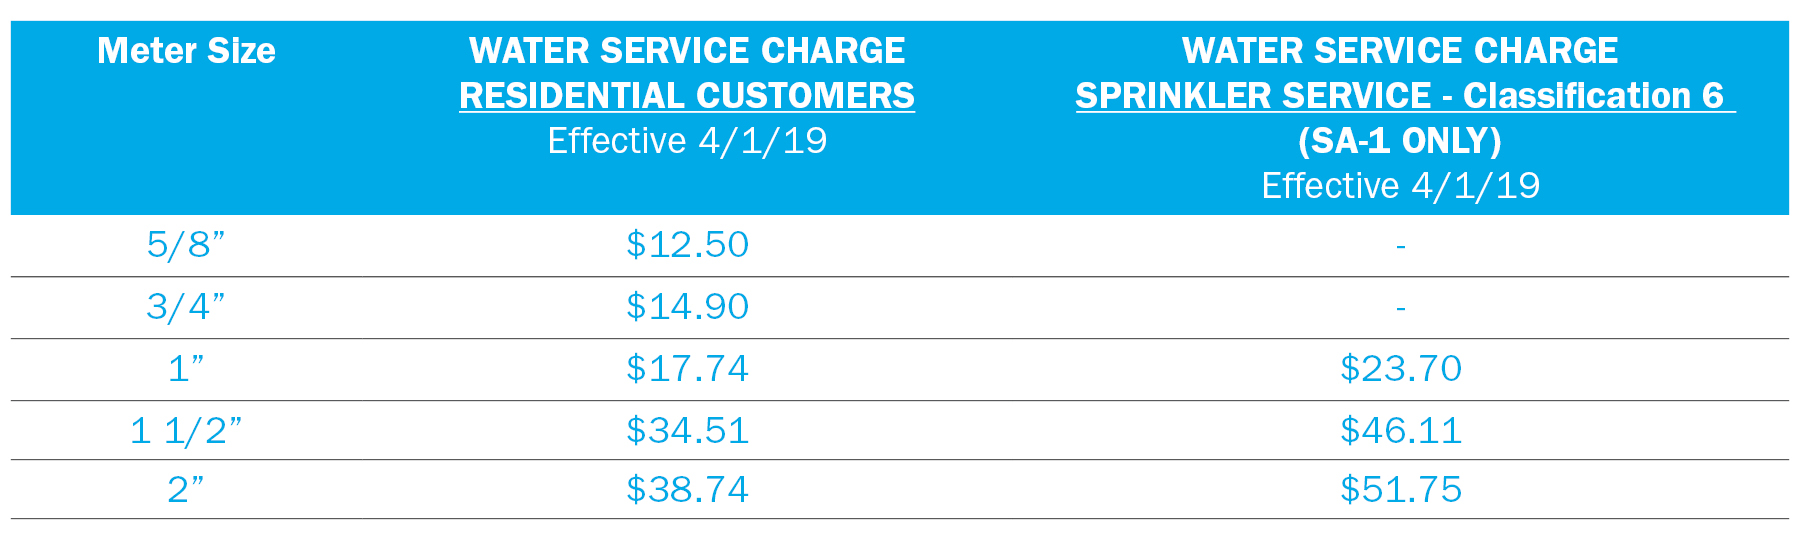 Rate Charts for Web - Service Charge RY3